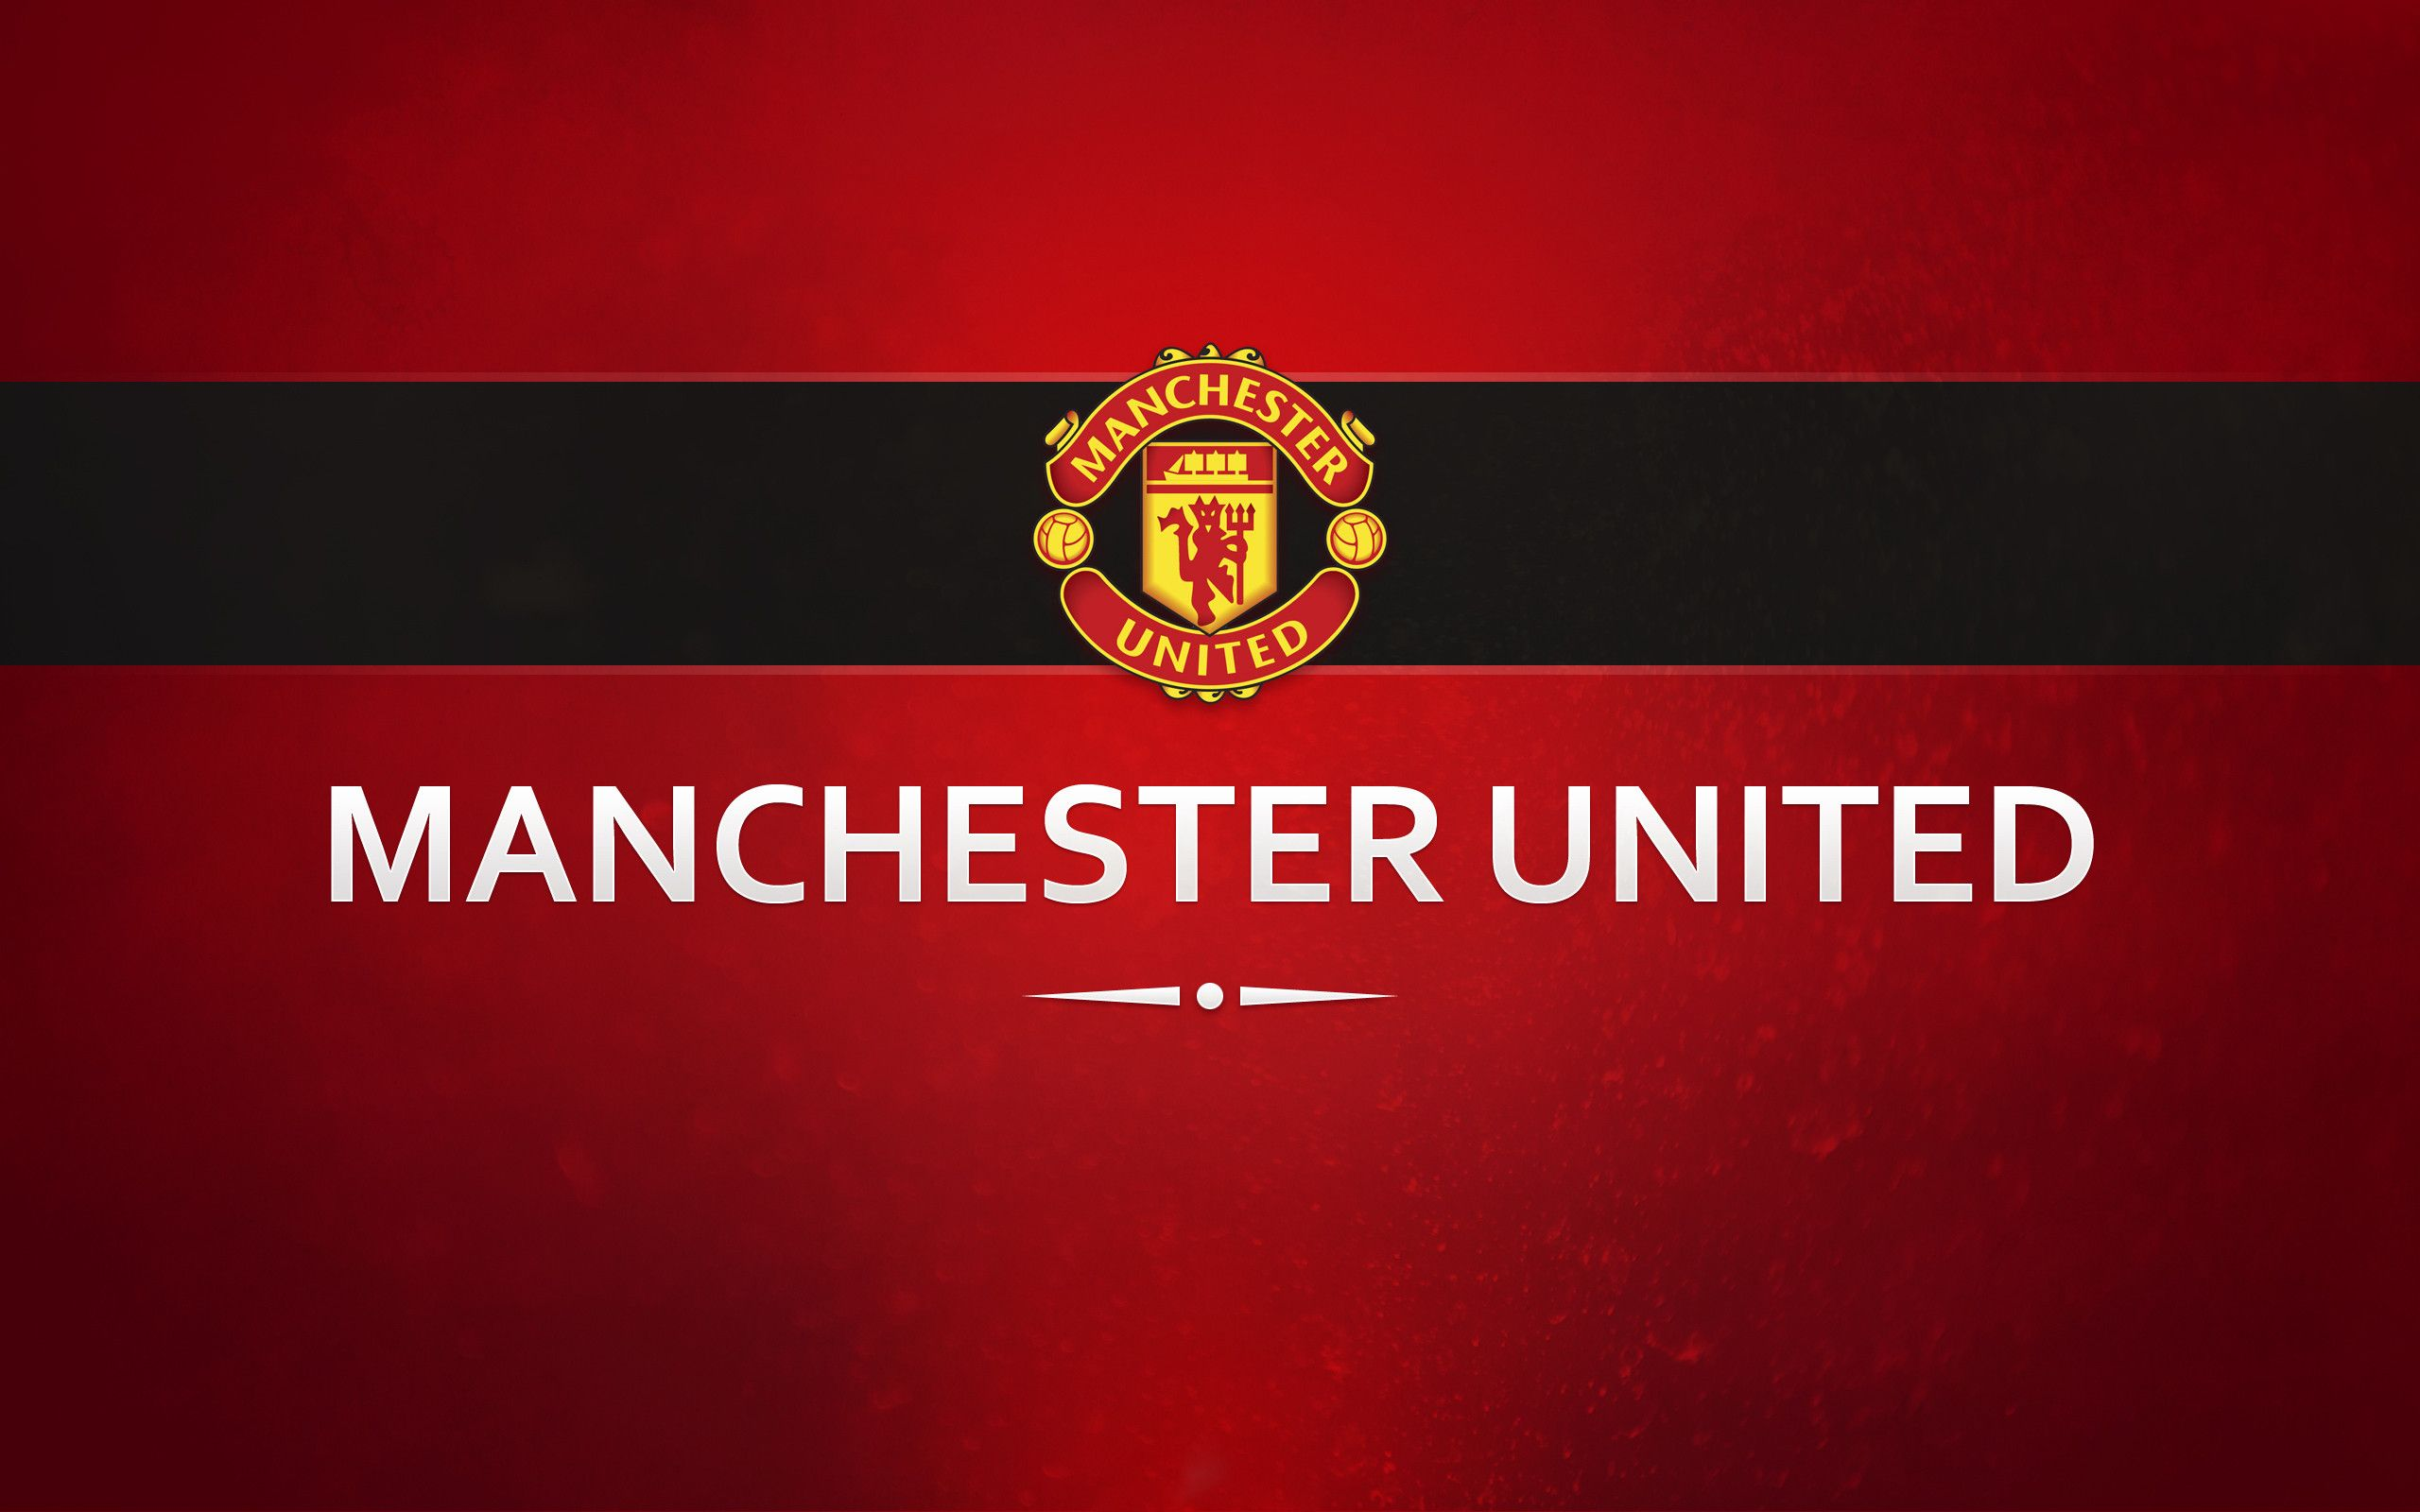 Man U Desktop Wallpaper